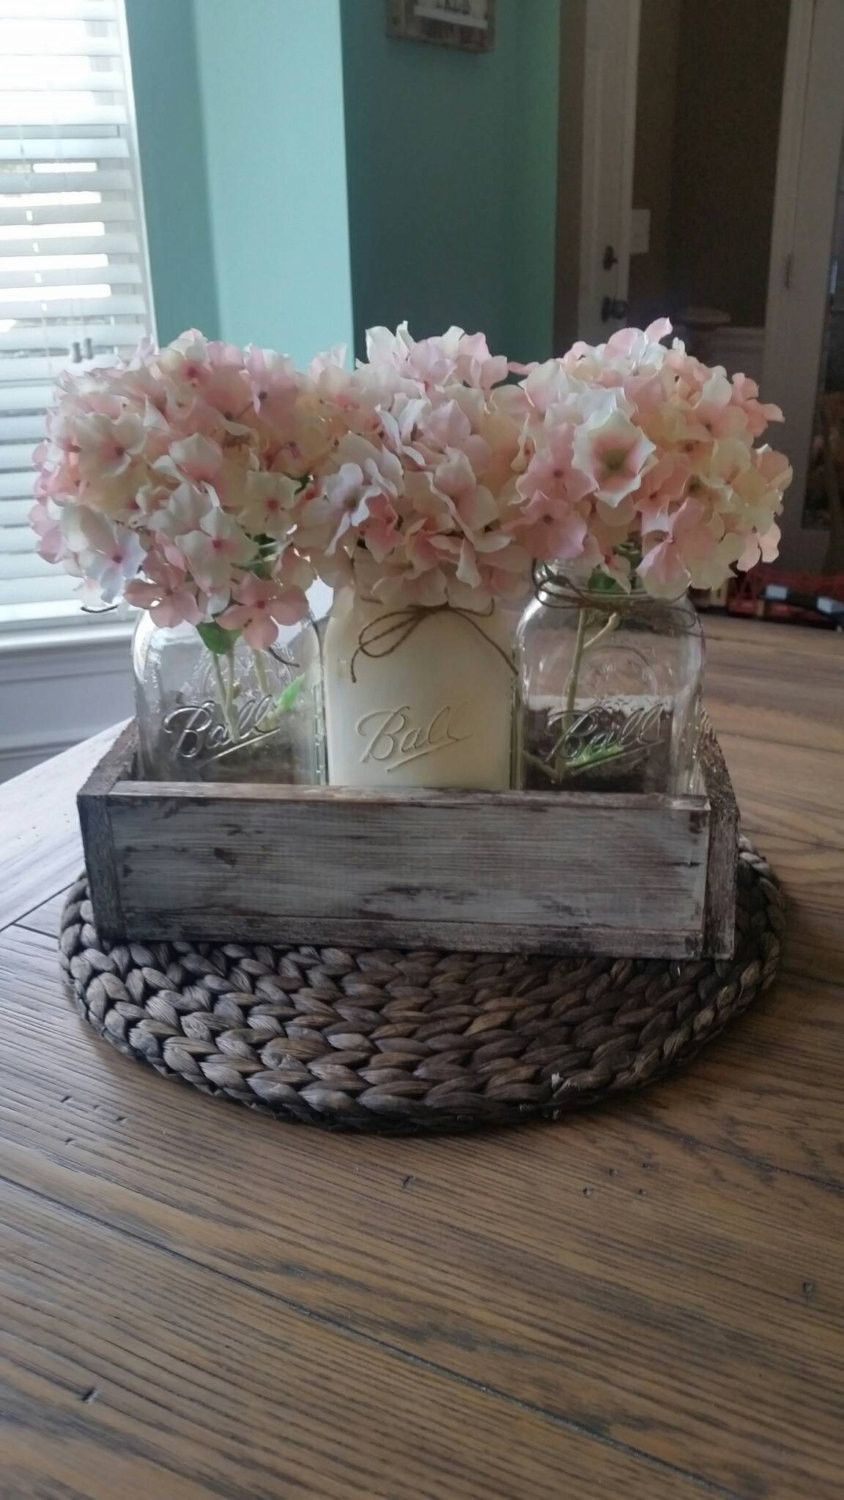 Mason jar wedding decoration ideas  Wedding Mason Jar Centerpiece  Taps Globe and House